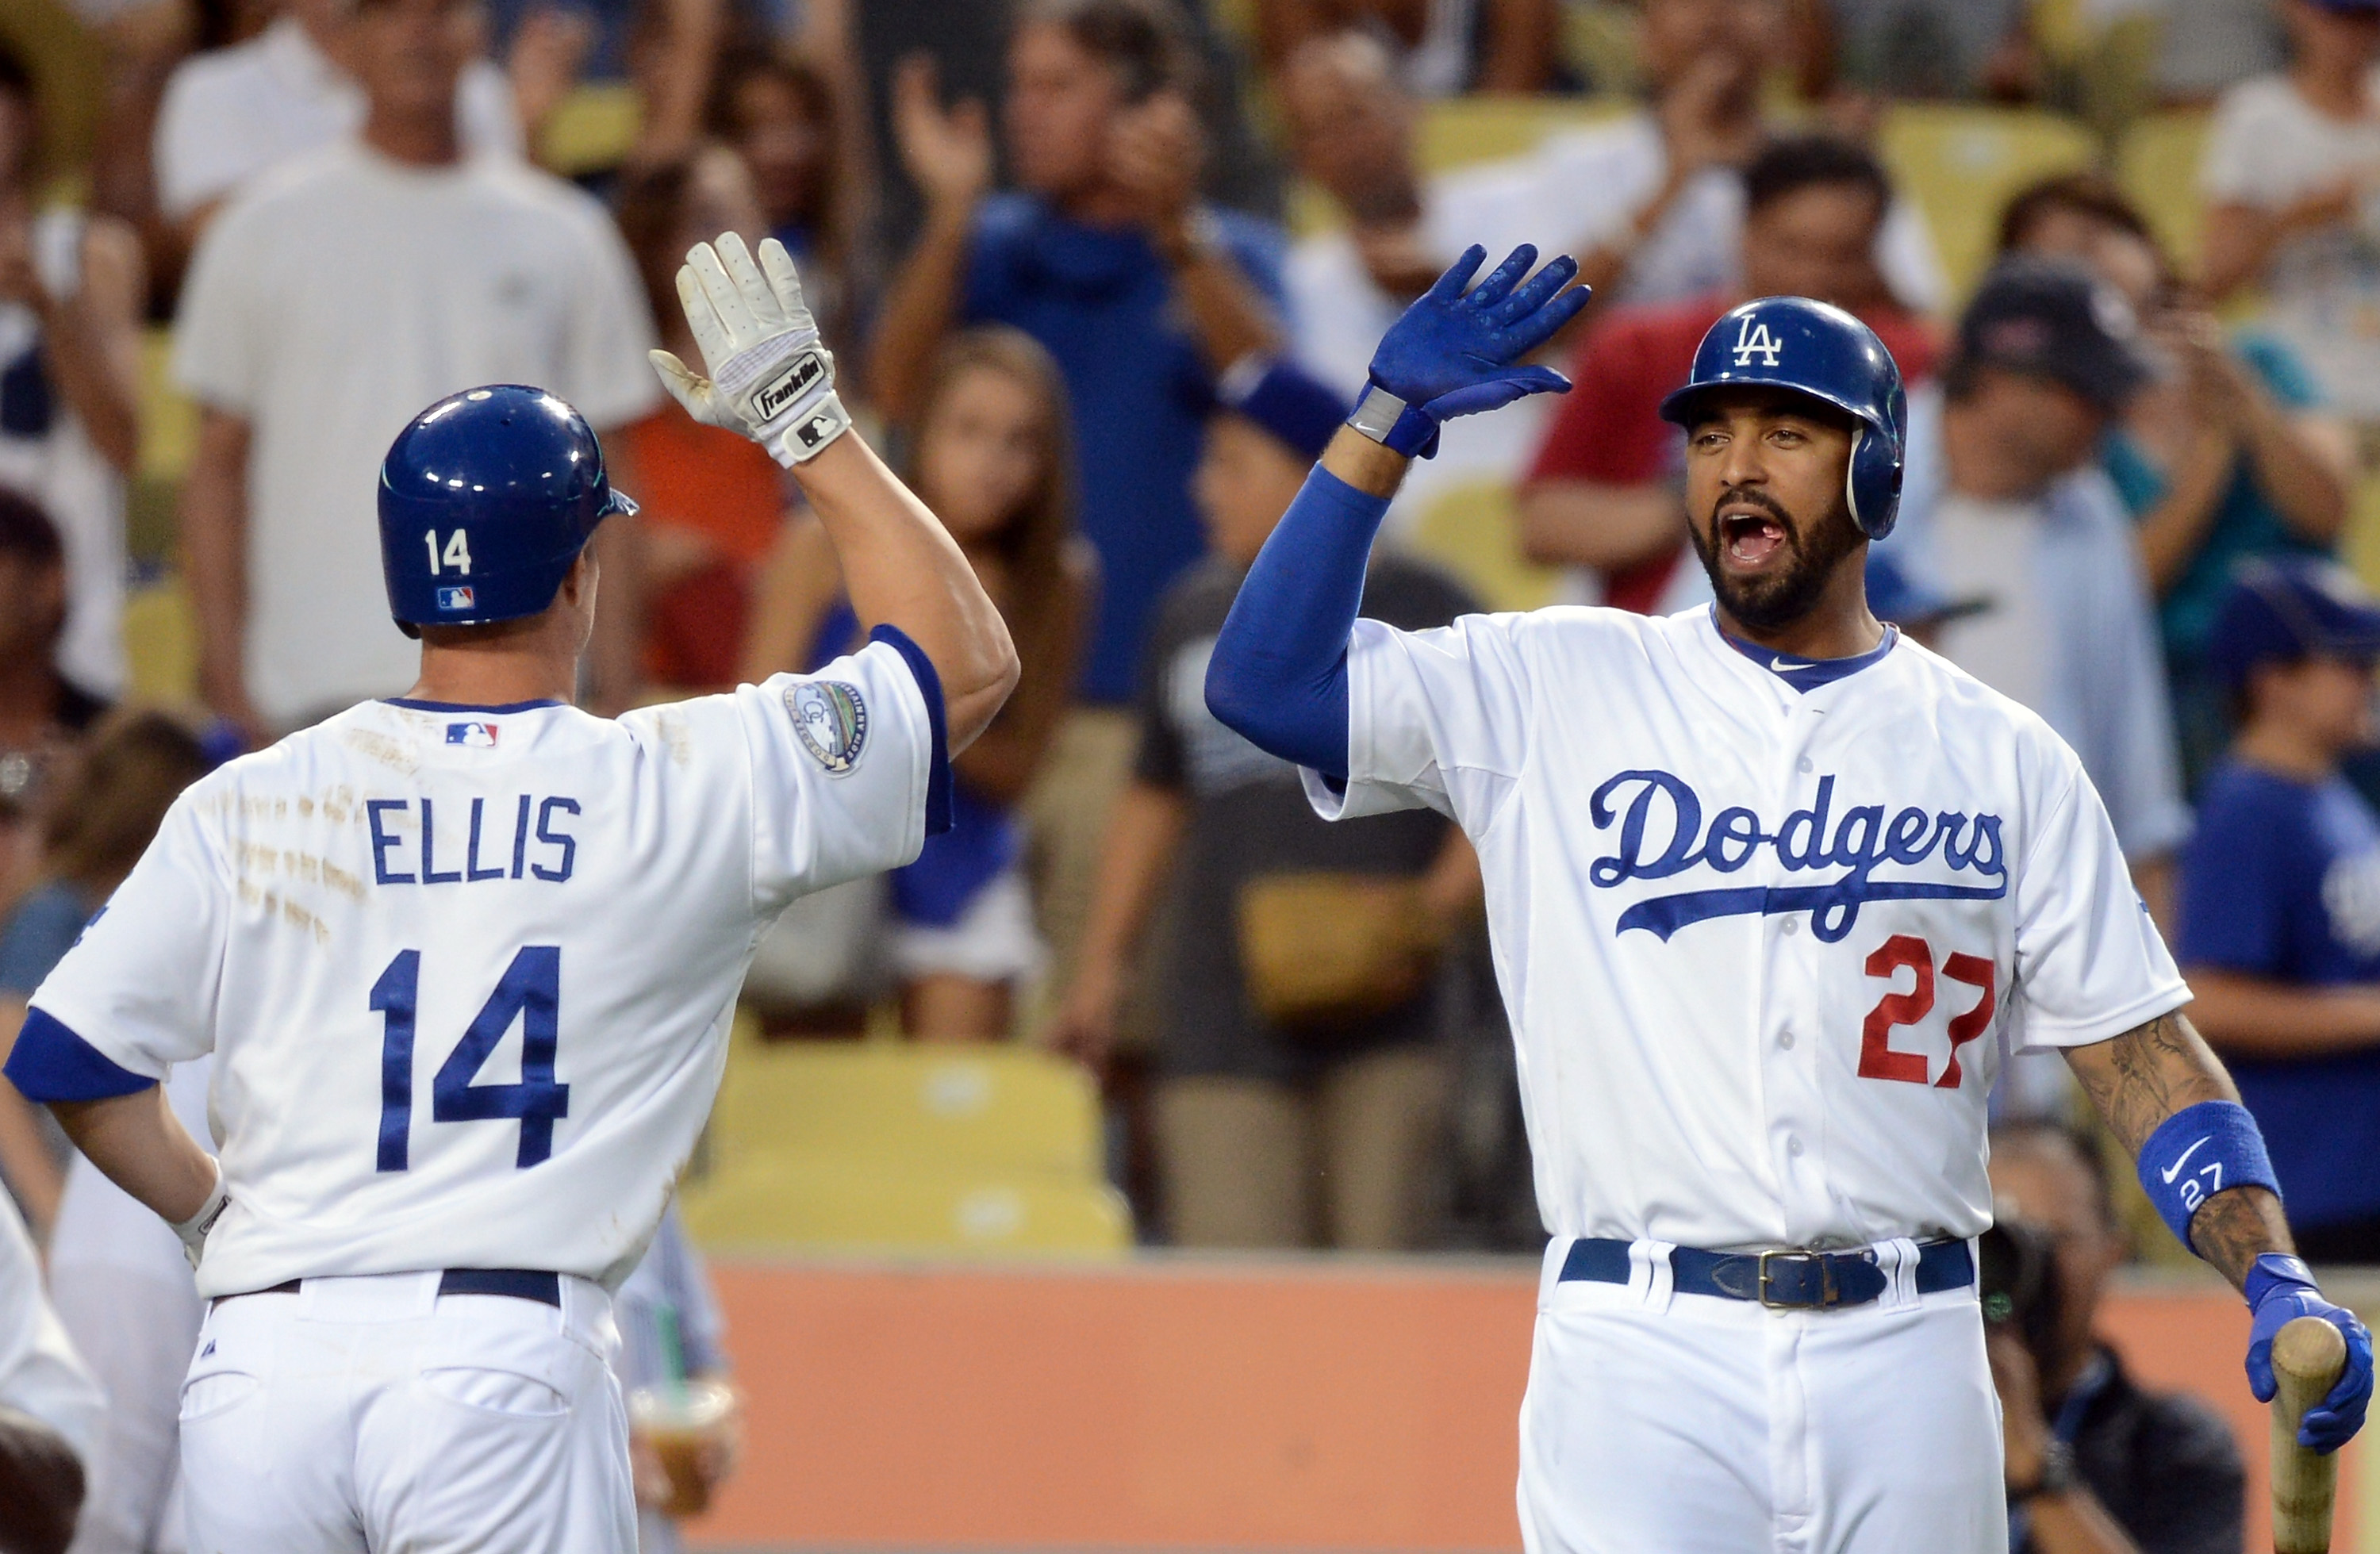 Matt Kemp, right, helped the Dodgers beat the Cardinals with his defense. (Getty Images)